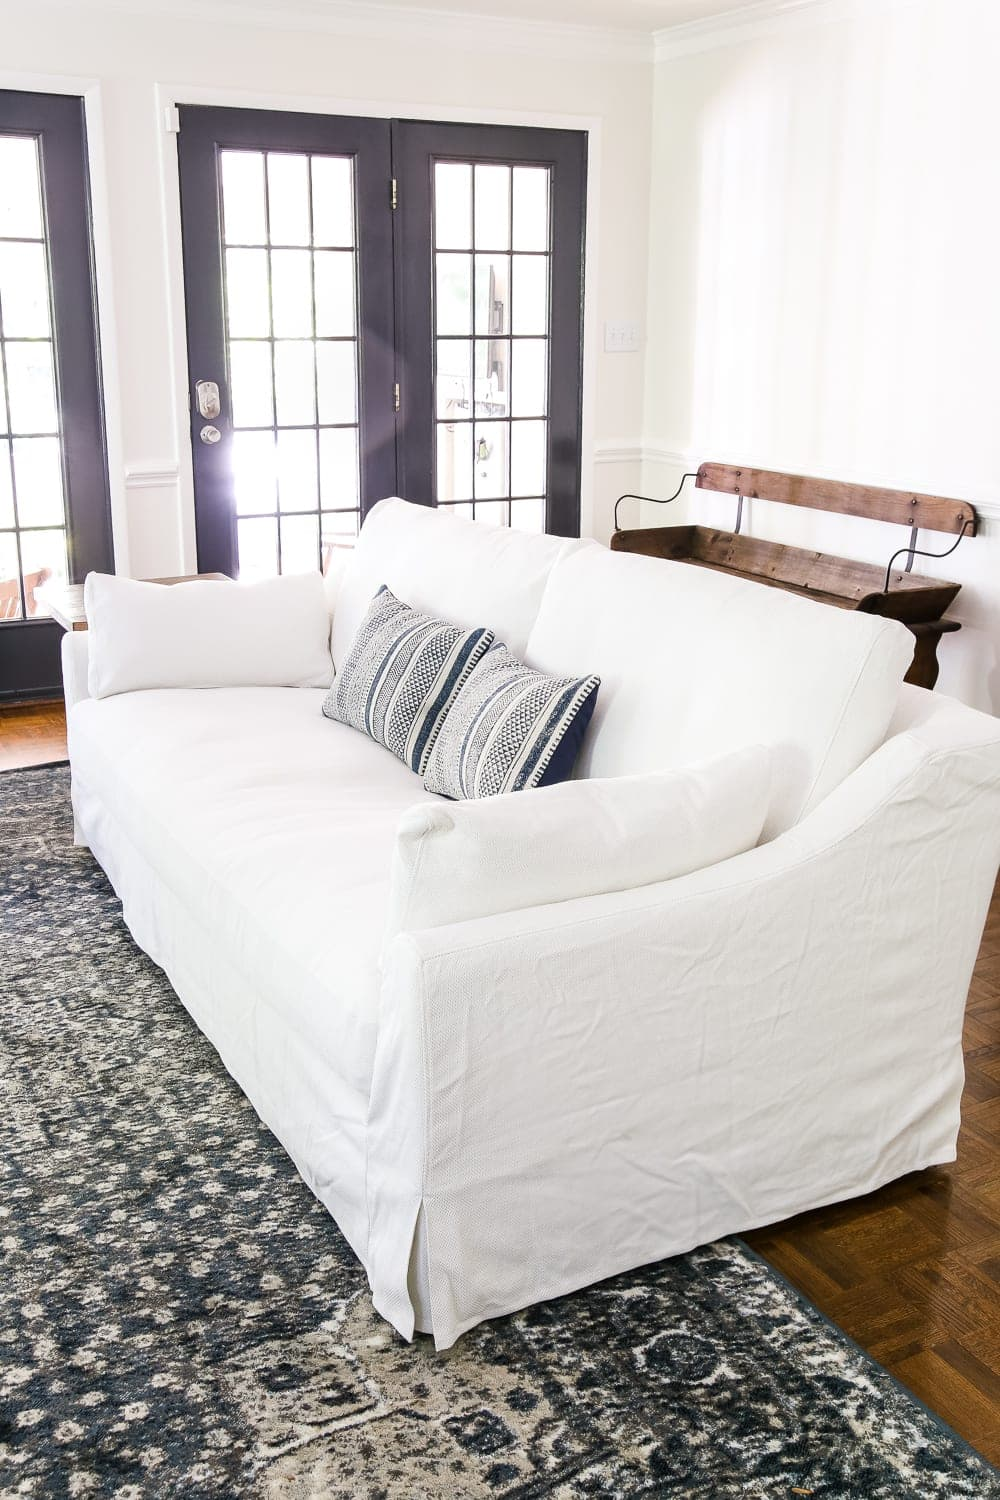 Linkshare innovative textile solutions harper stripe with straps sofa furniture protector slipcover. IKEA's New Sofa and Chairs and How to Keep Them Clean ...